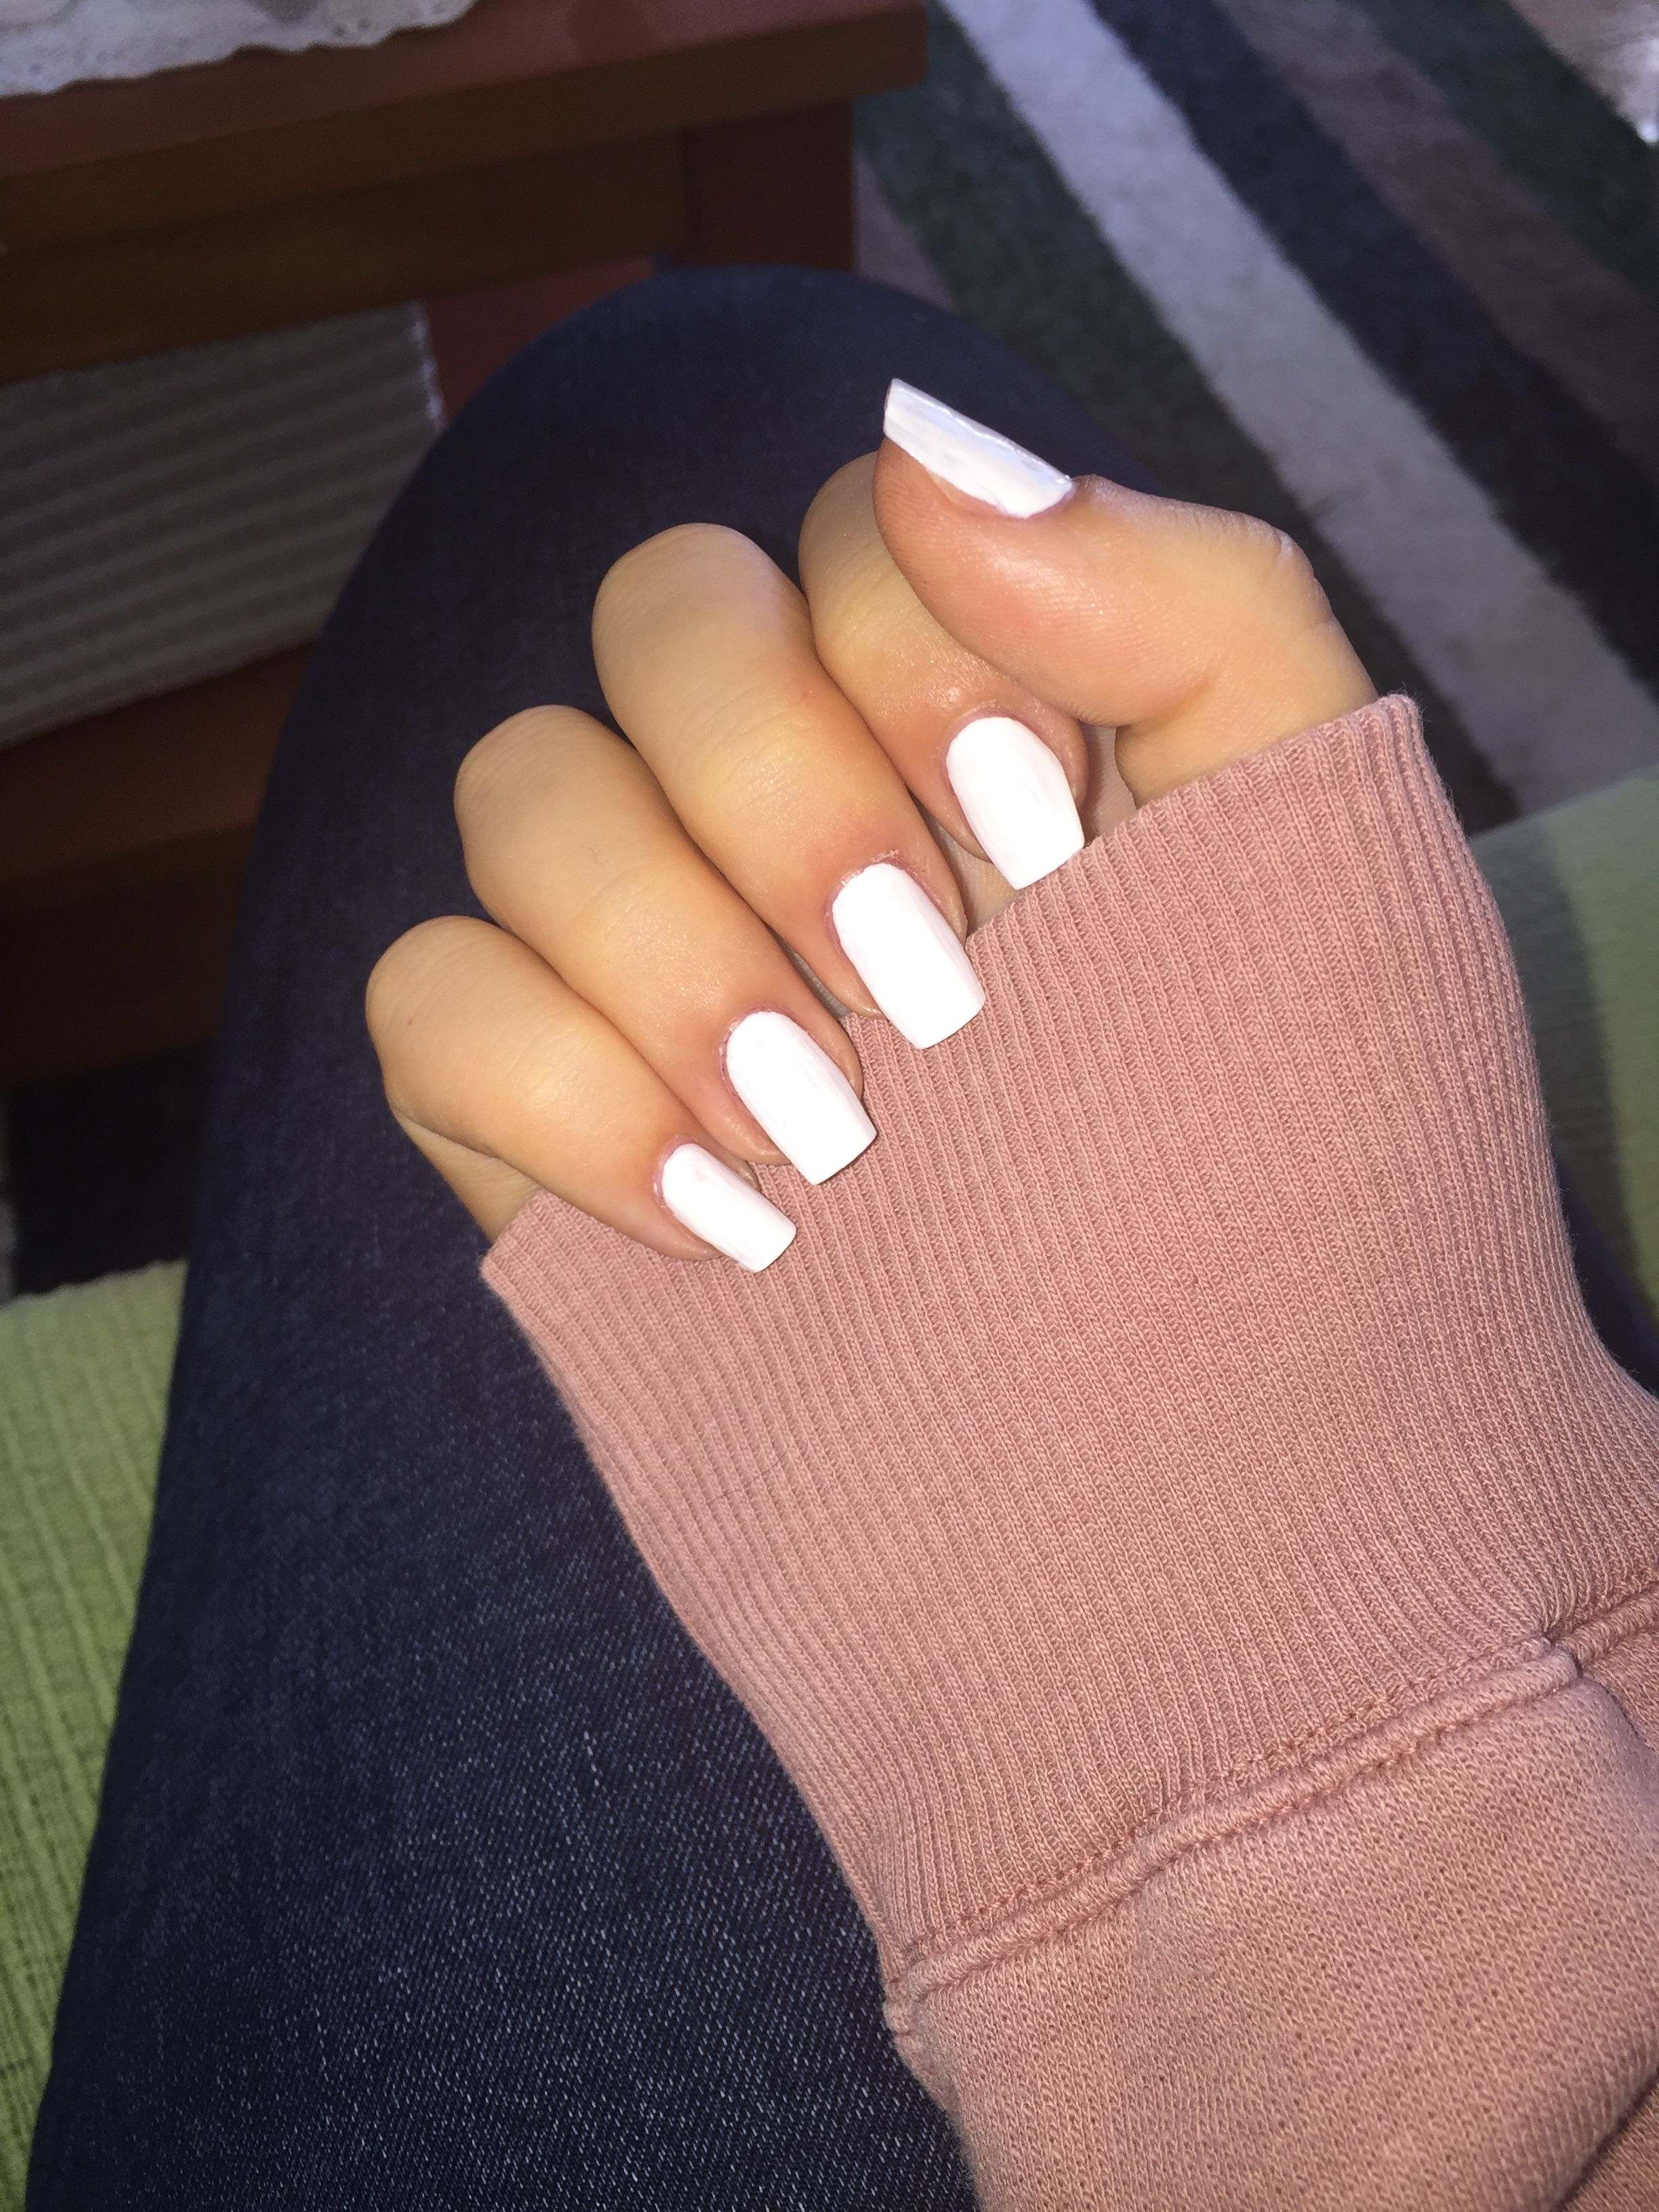 Pin by Haley Williams on Nails ️ | Long white nails, Short ...